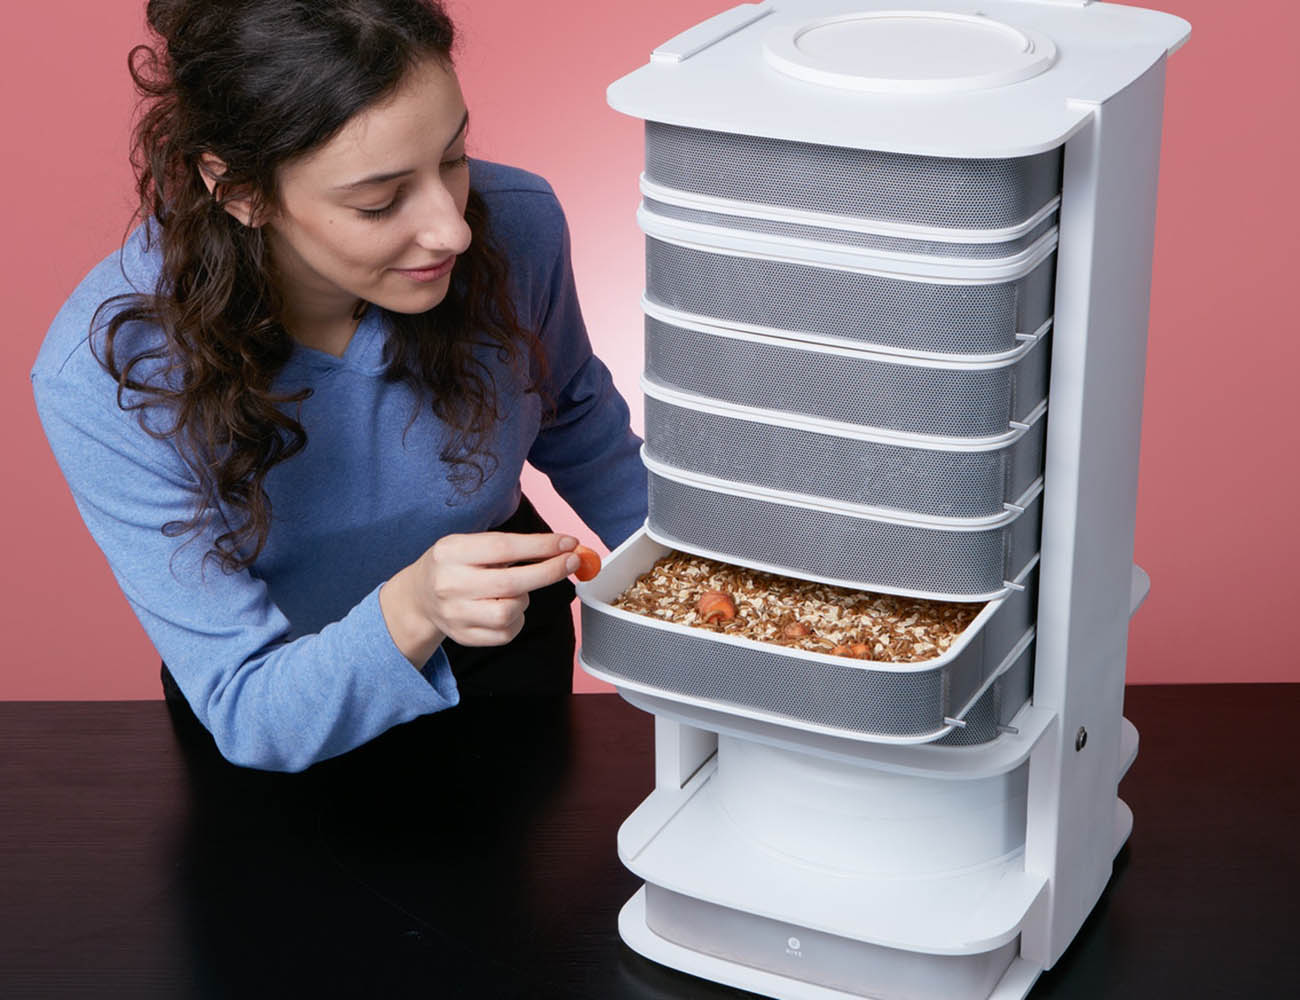 LIVIN Farm Hive – The World's First Edible Insect Desktop Hive